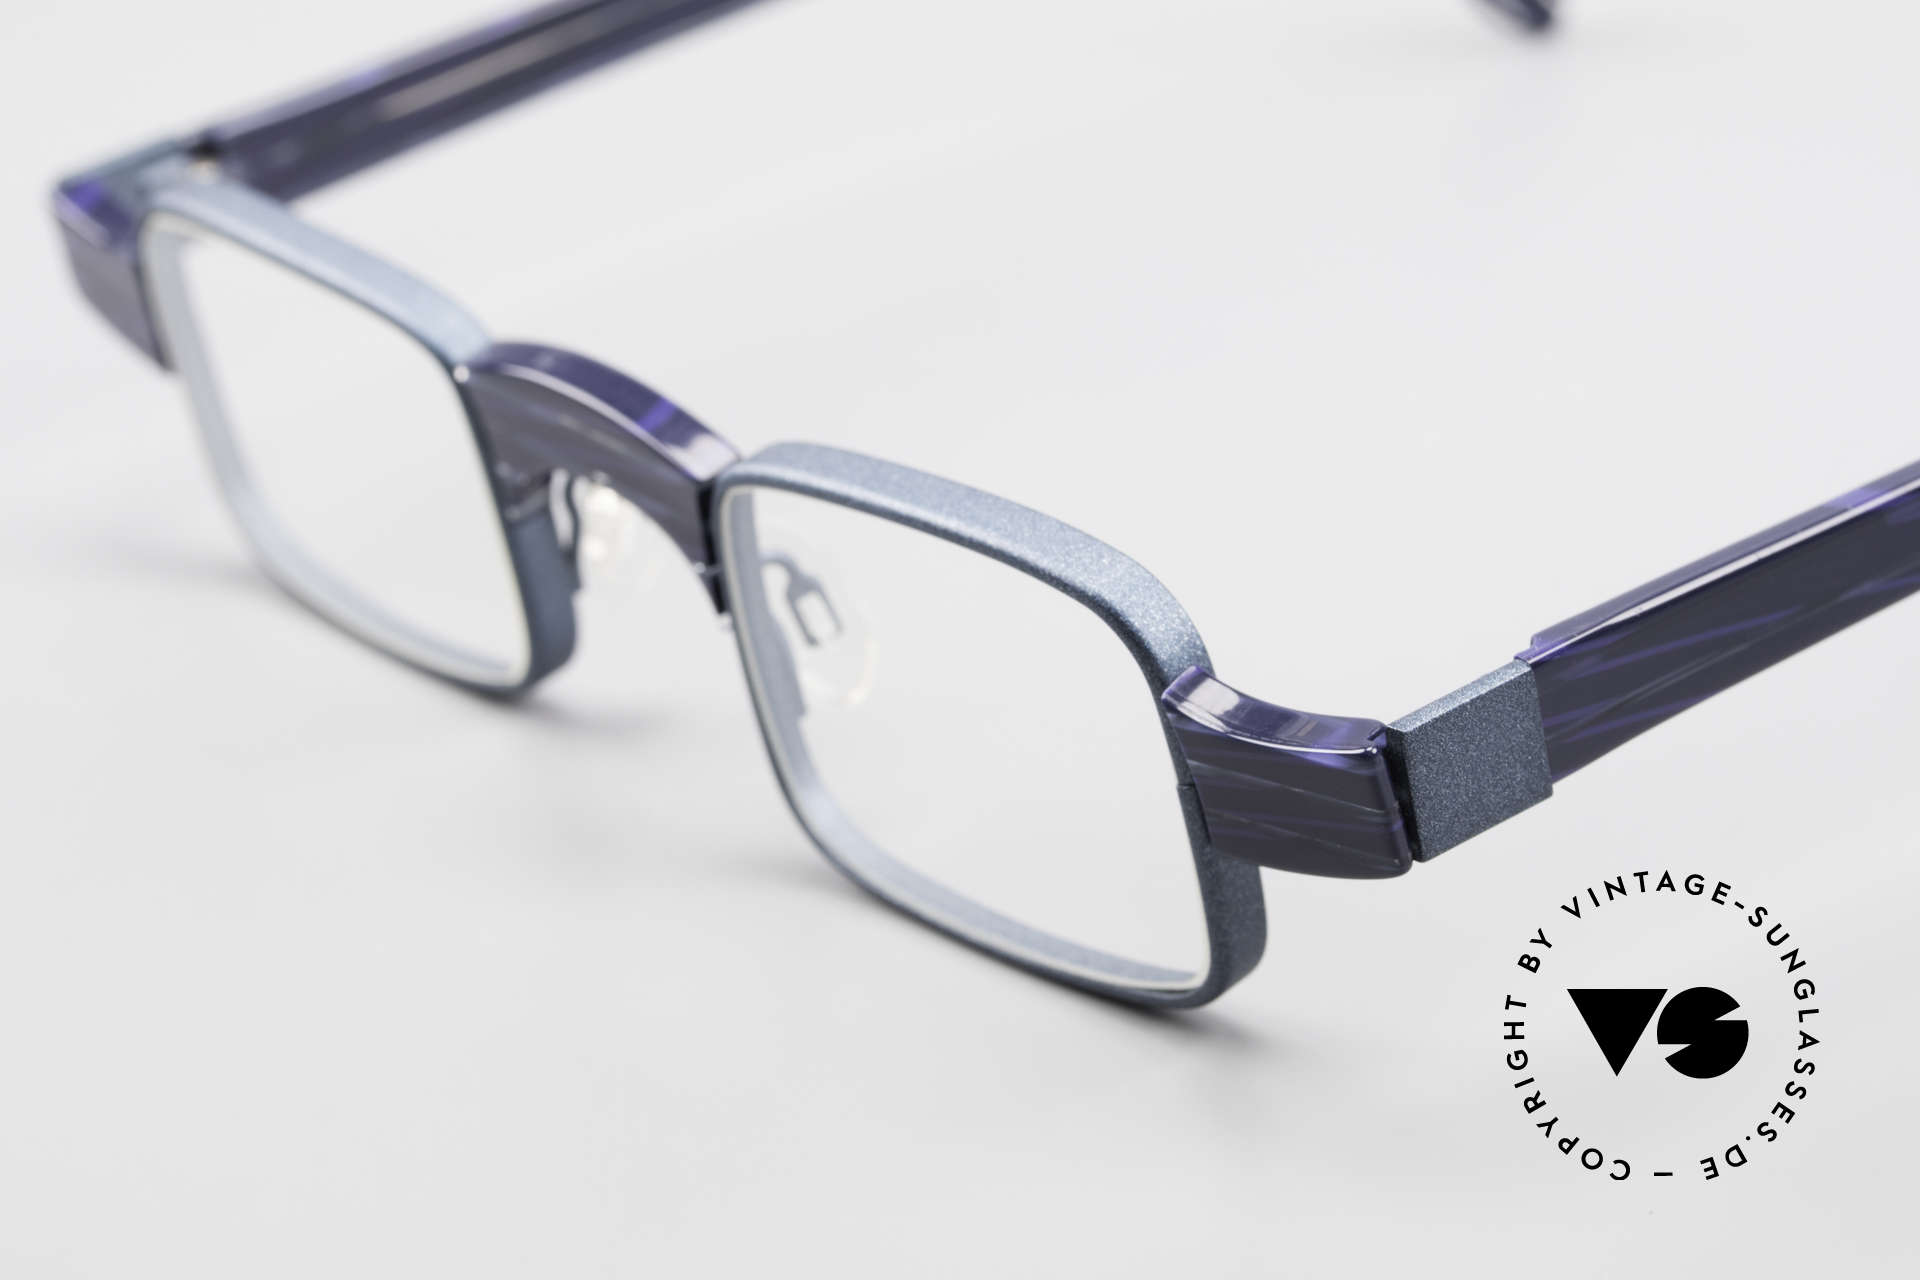 Theo Belgium Aphrodite Vintage Combi Designer Specs, made for the avant-garde, individualists & trend-setters, Made for Women